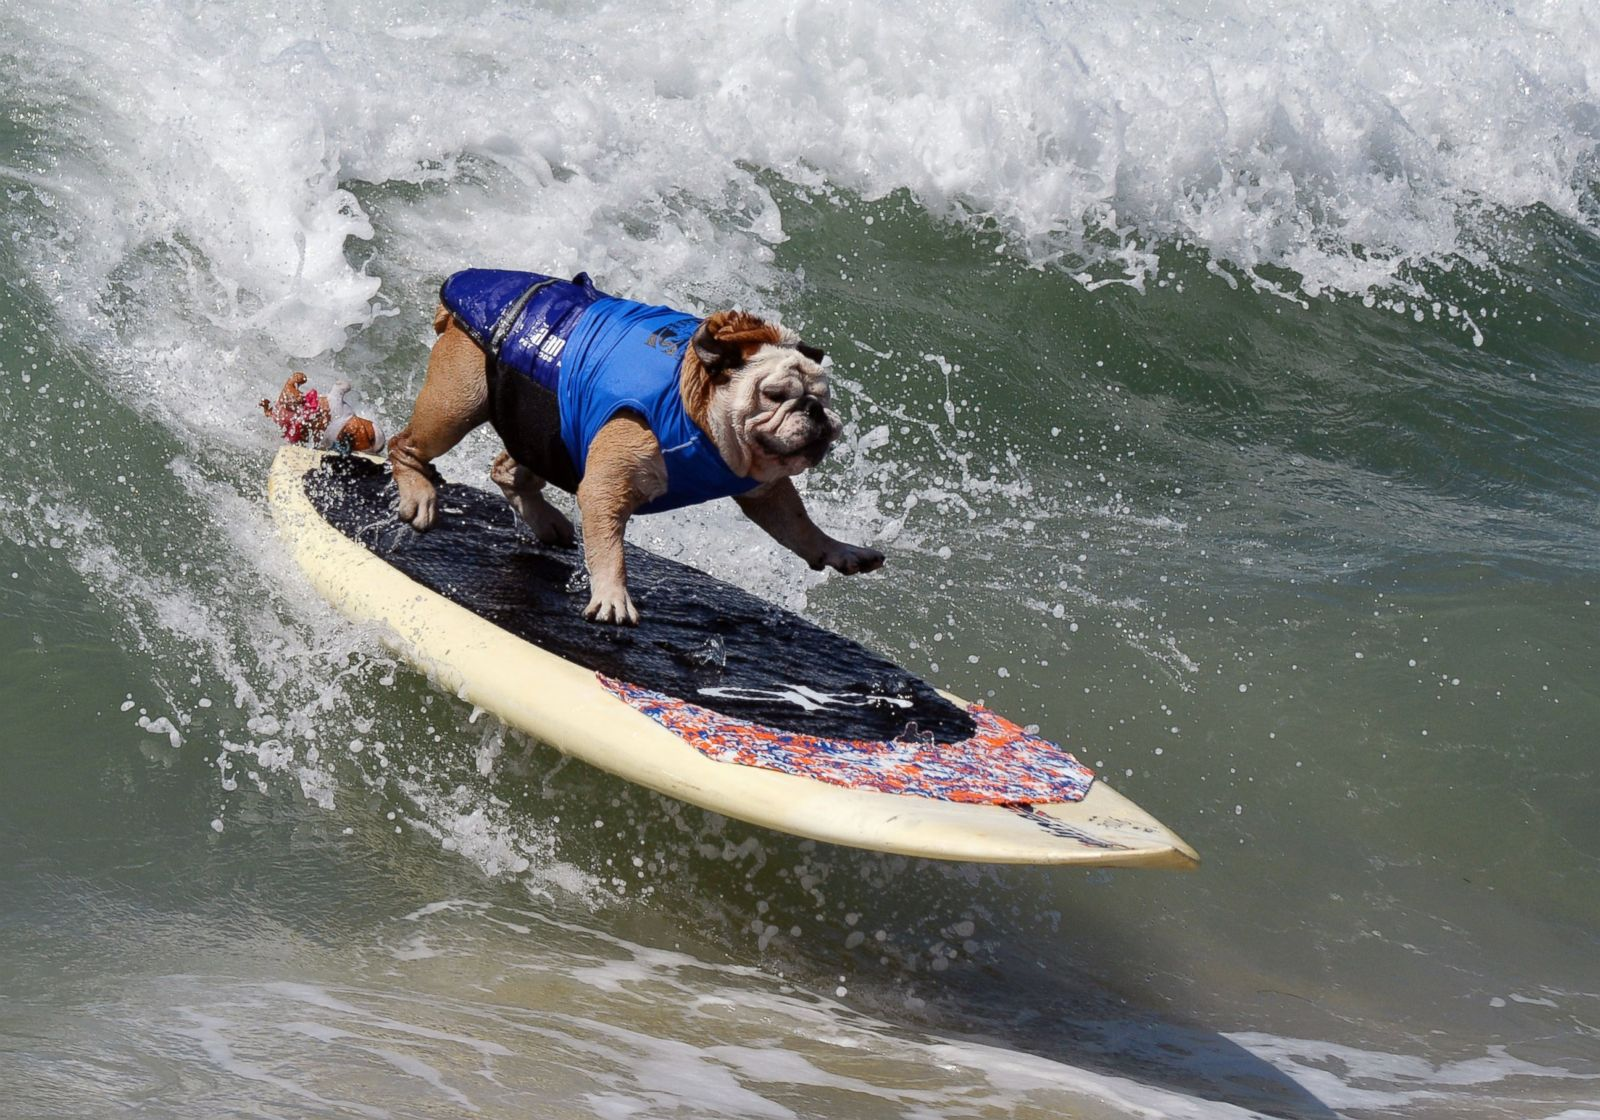 Gty dog surfing 8 sk 140929 10x7 1600